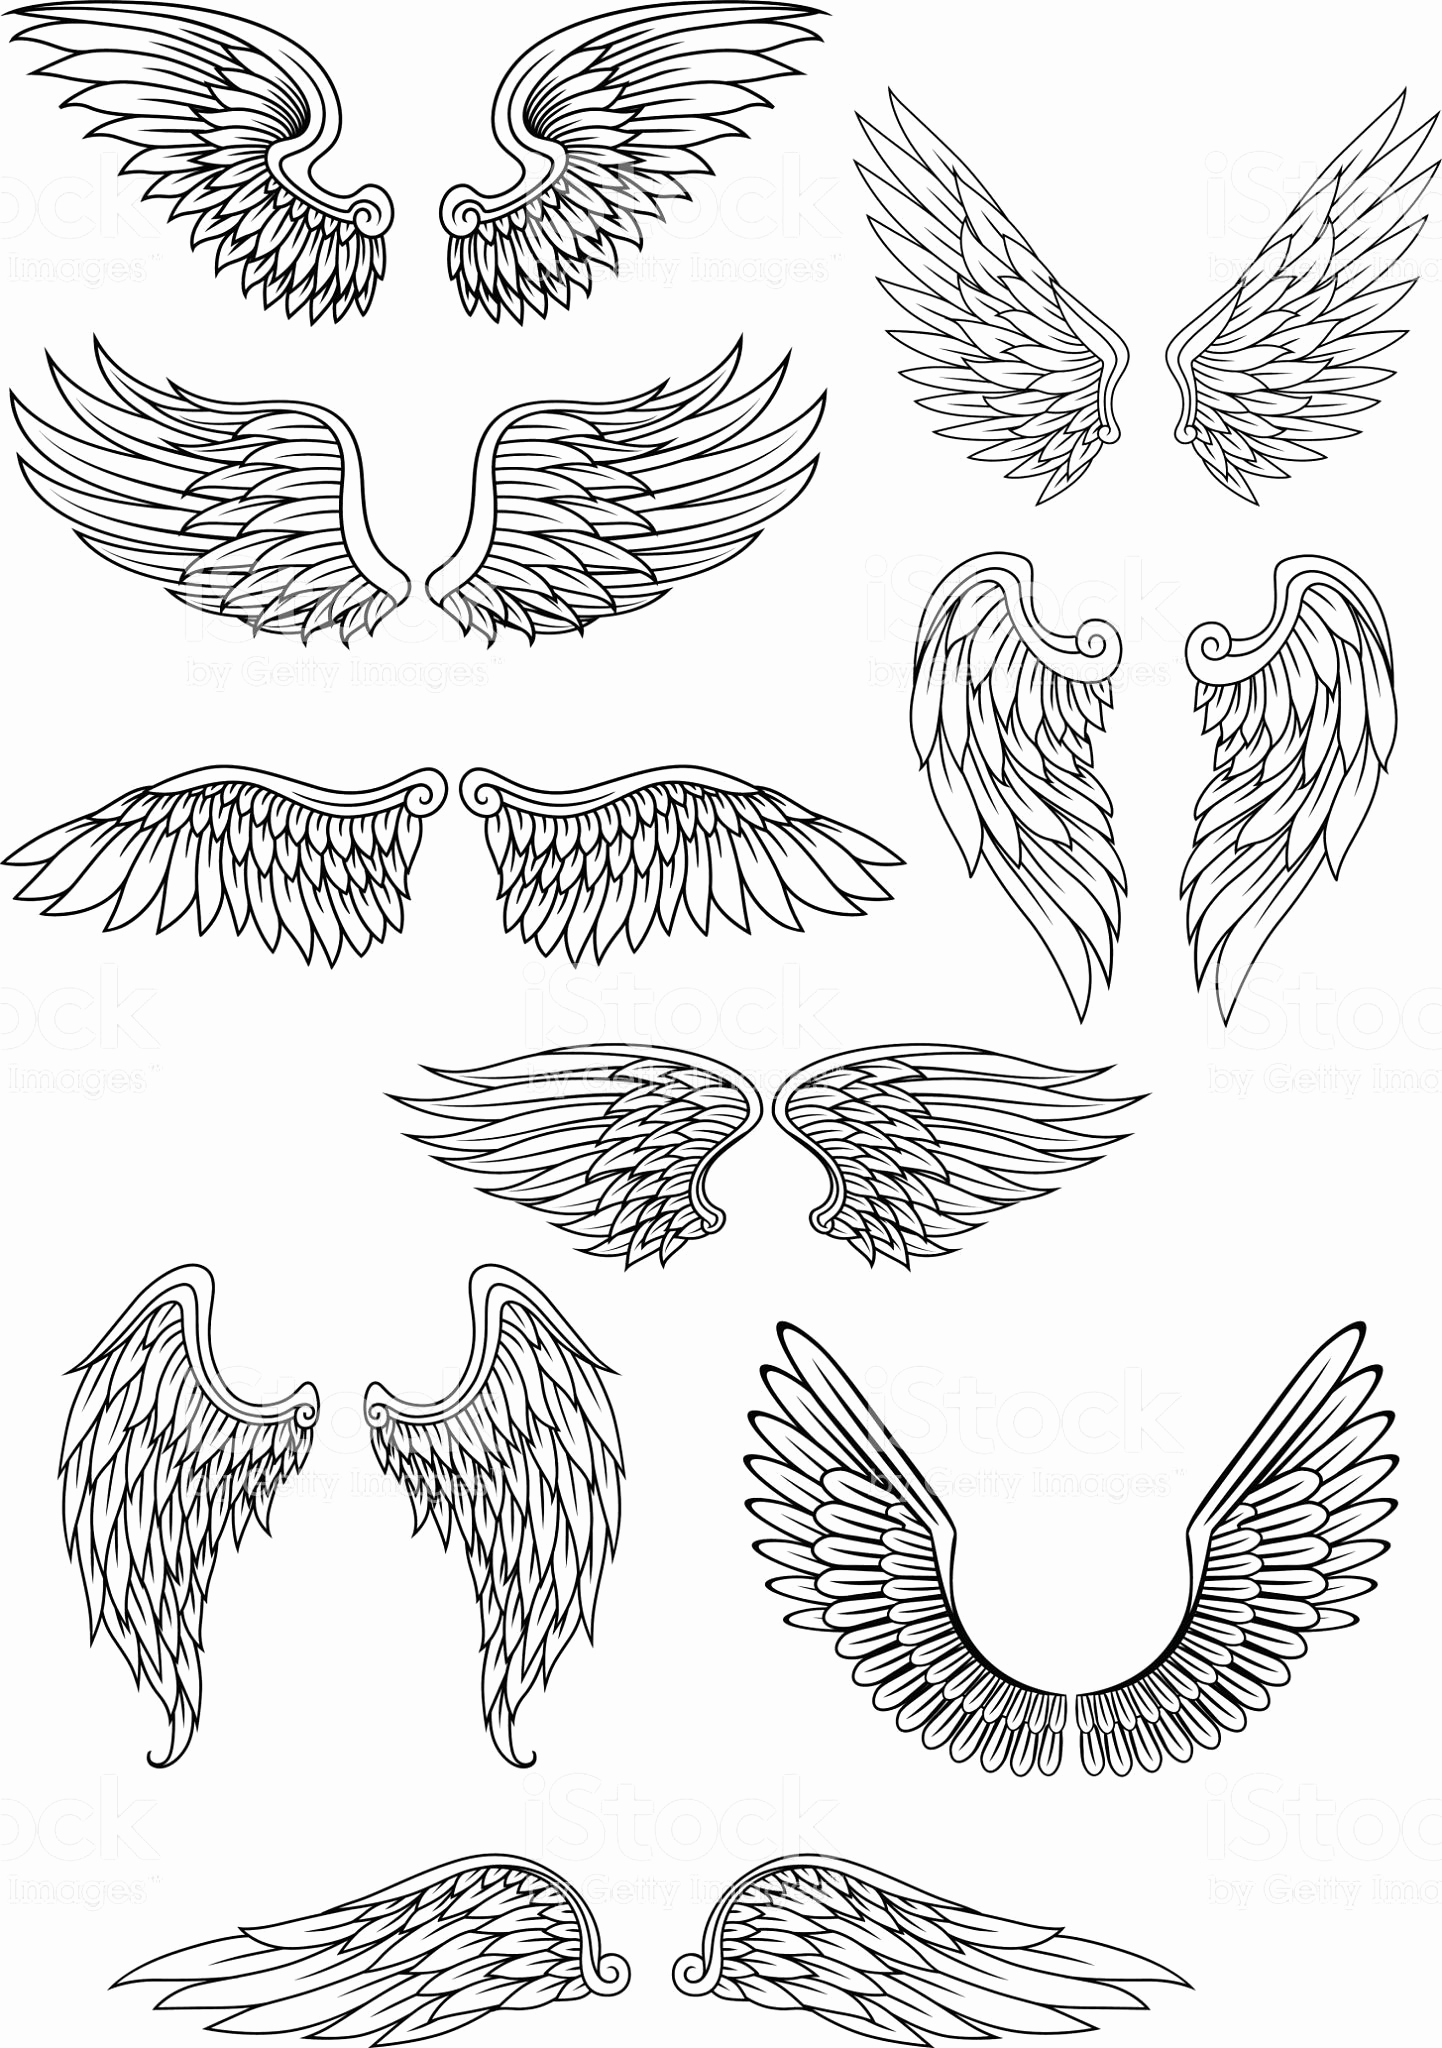 Drawings Of Angels Wings Lovely Heraldic Bird or Angel Wings Set isolated On White for